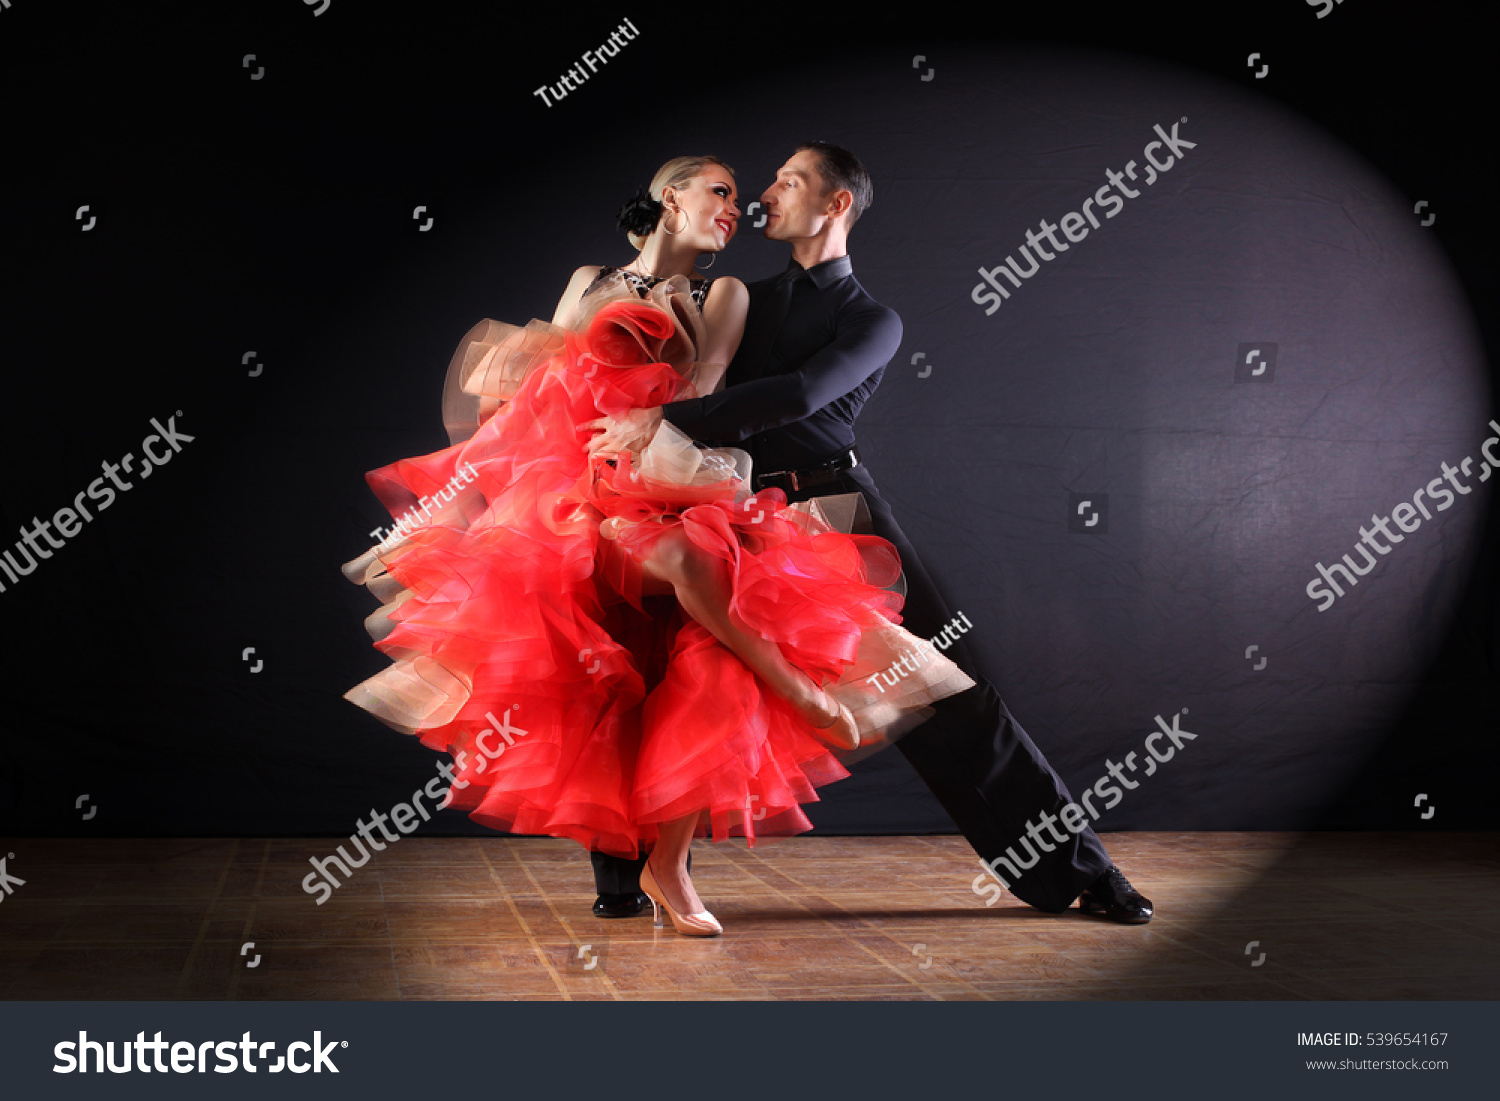 Dancers Ballroom Isolated On Black Background Stock Photo ...